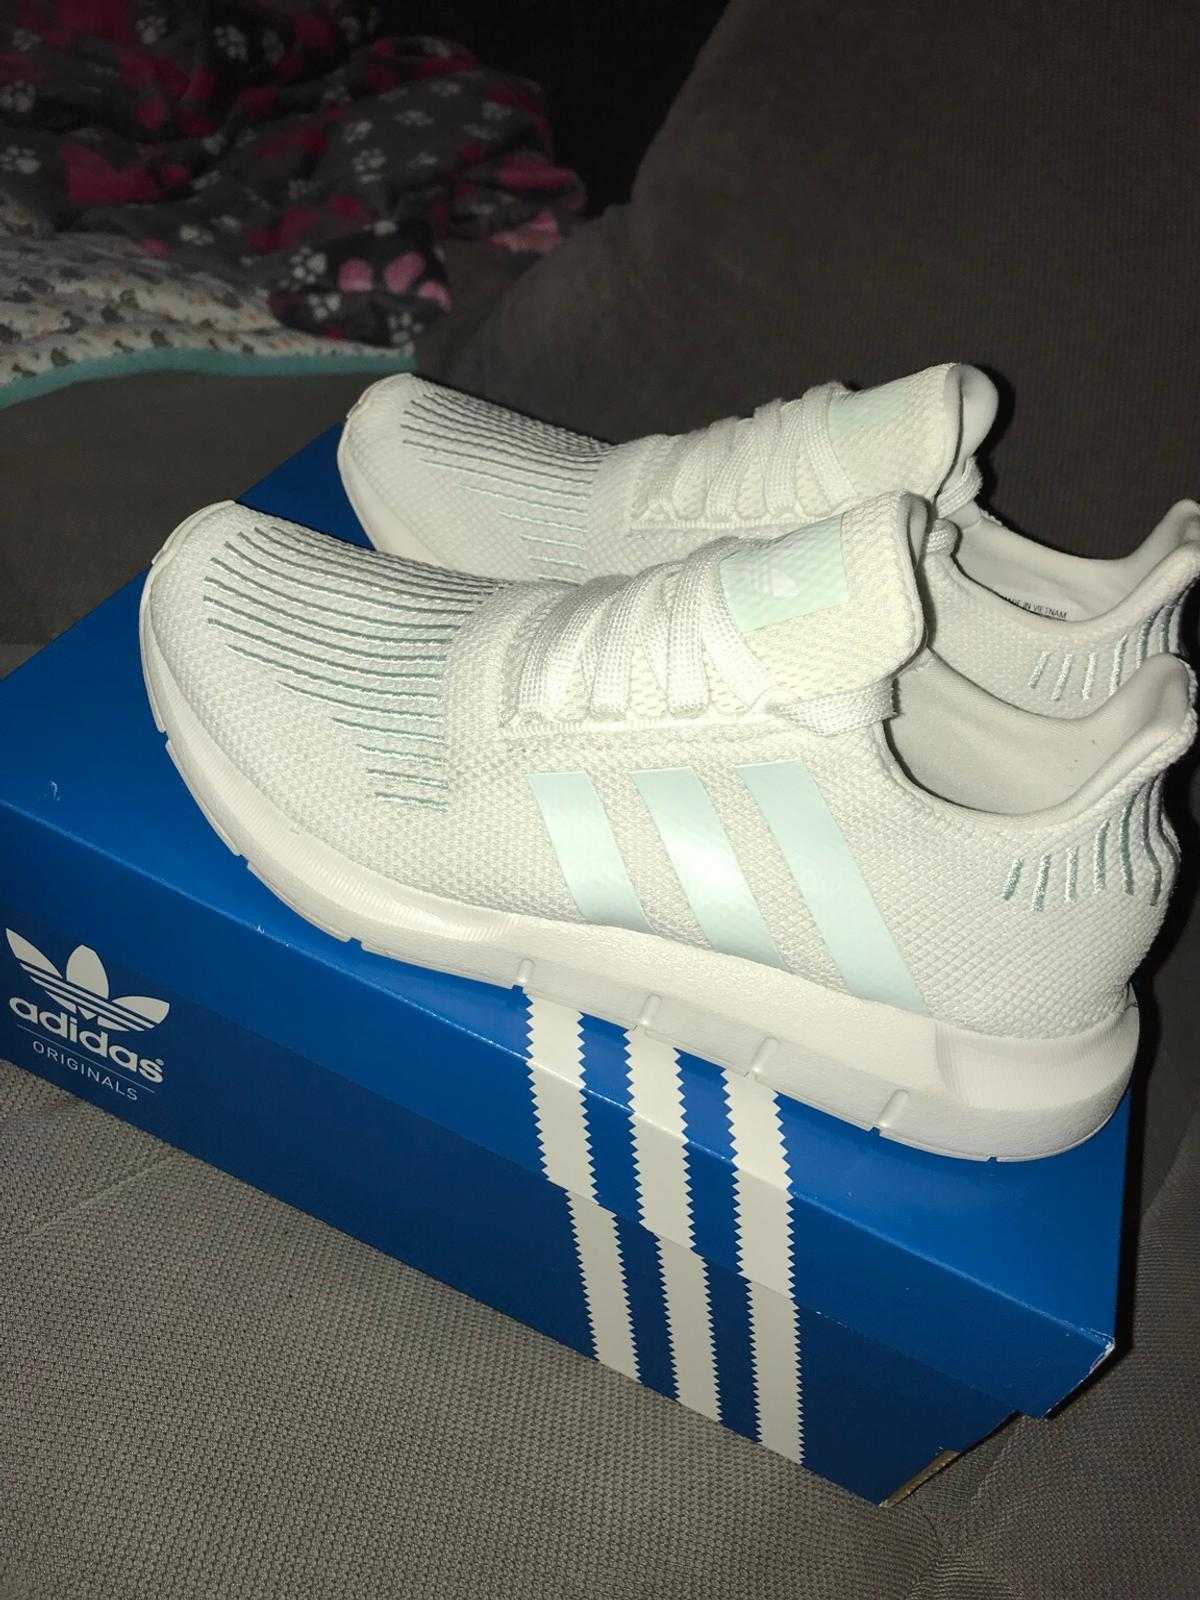 Adidas Swift Run W in 4833 Petingen for €55.00 for sale | Shpock